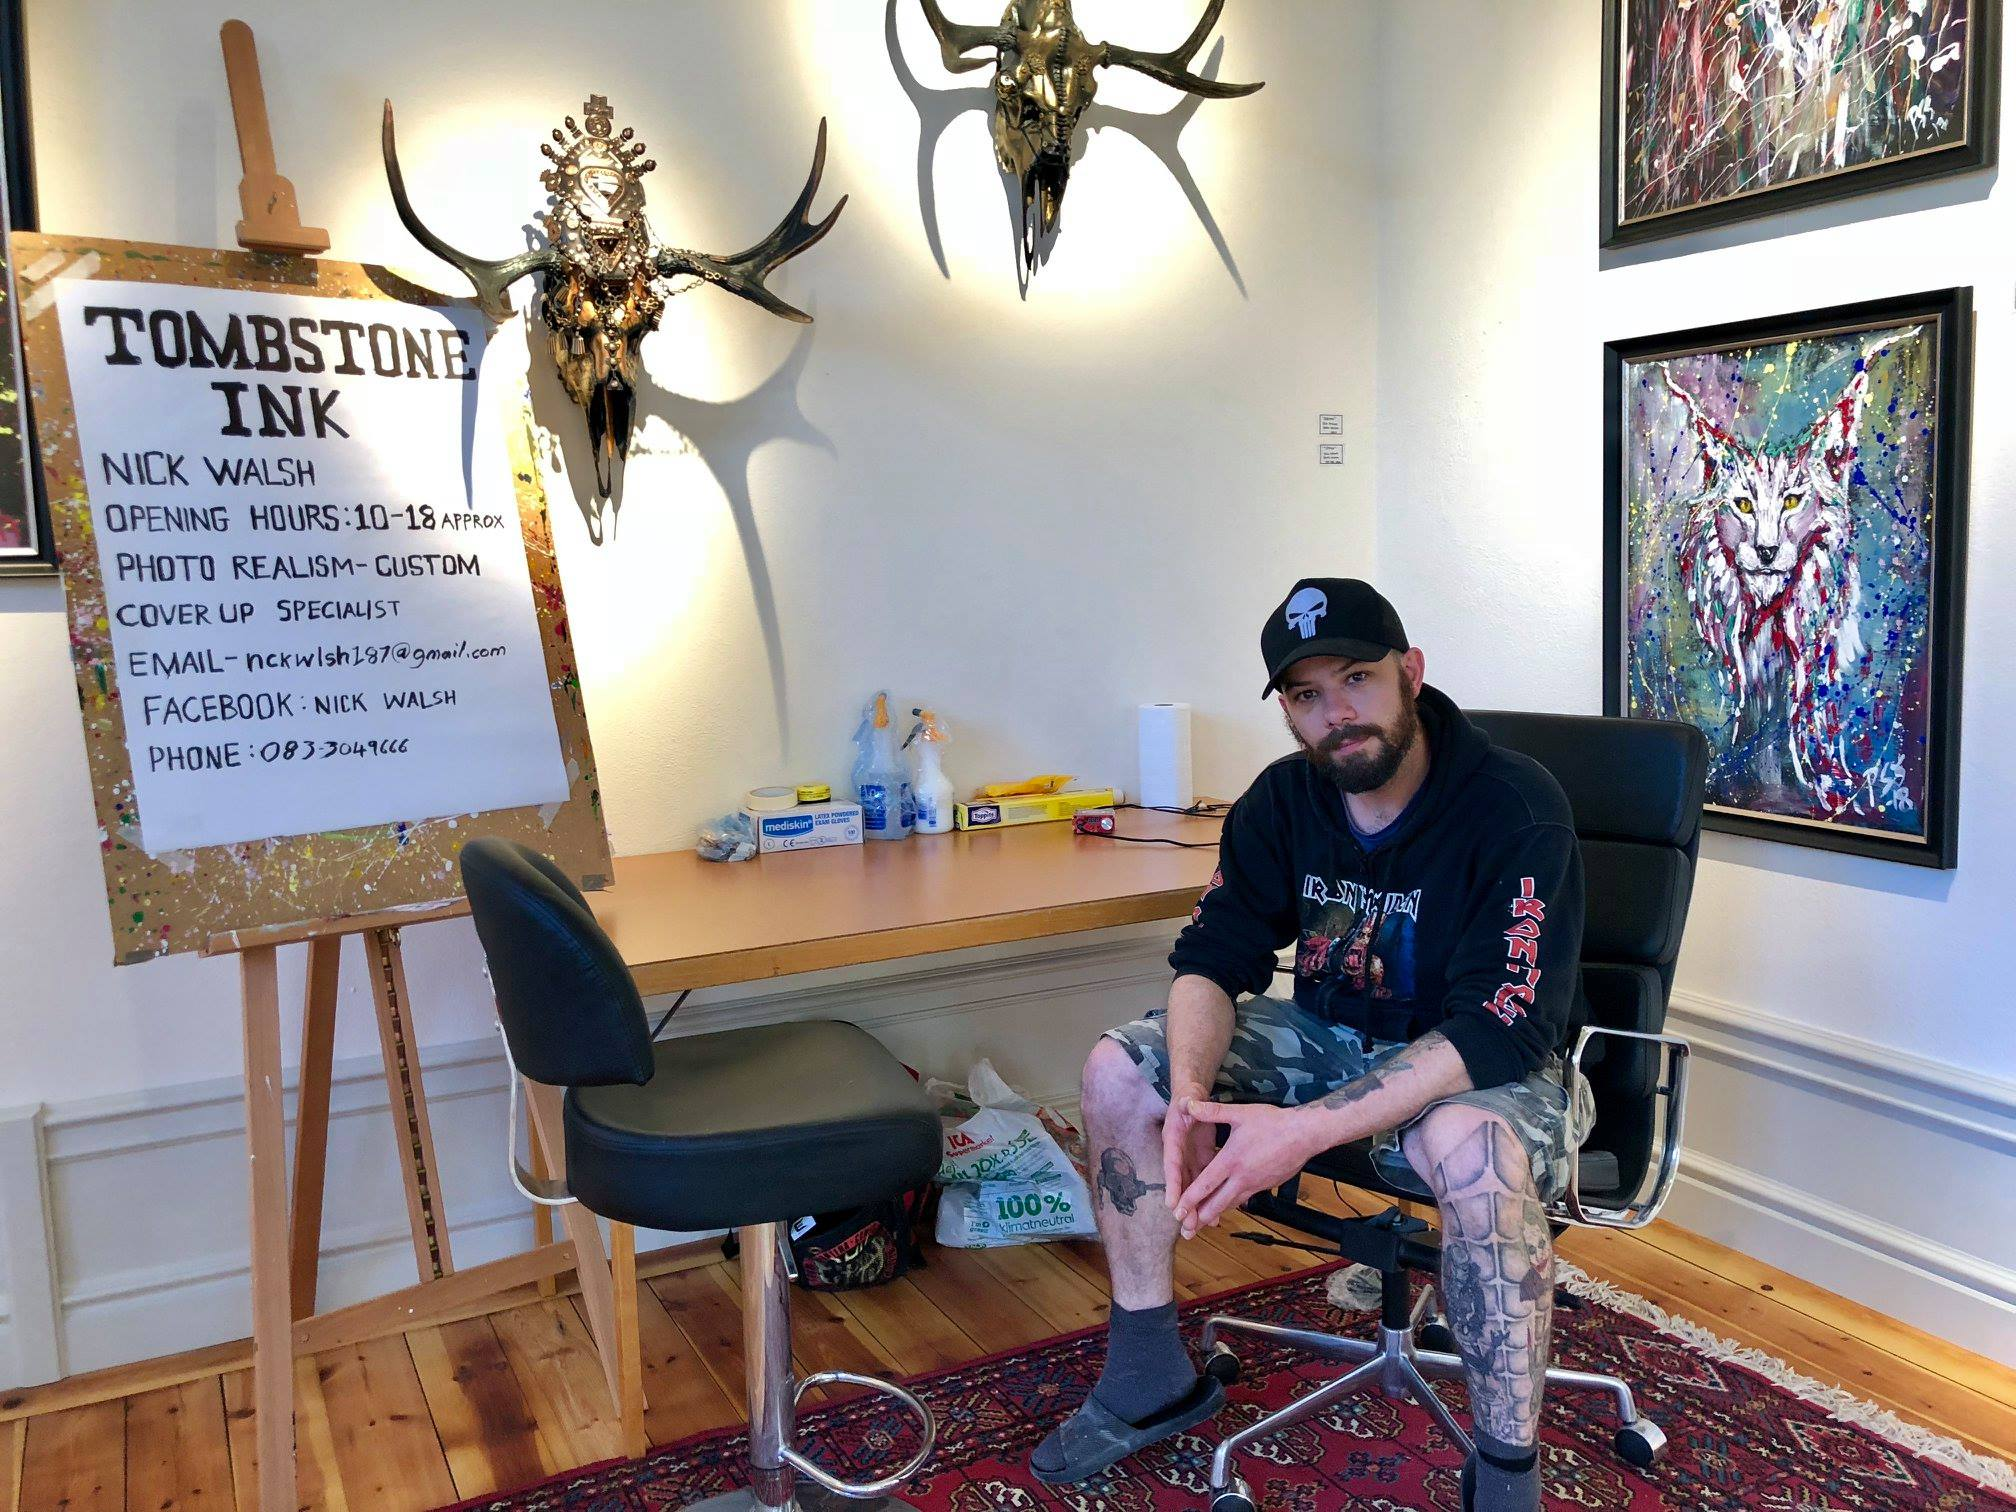 Last summer Irish Tattoo artist Nick Walsh visited Helsinglight during our FX Mask Making Workshop. Nick set up a temporary tattoo studio in Helsinglight Art Gallery during his 2 week stay.